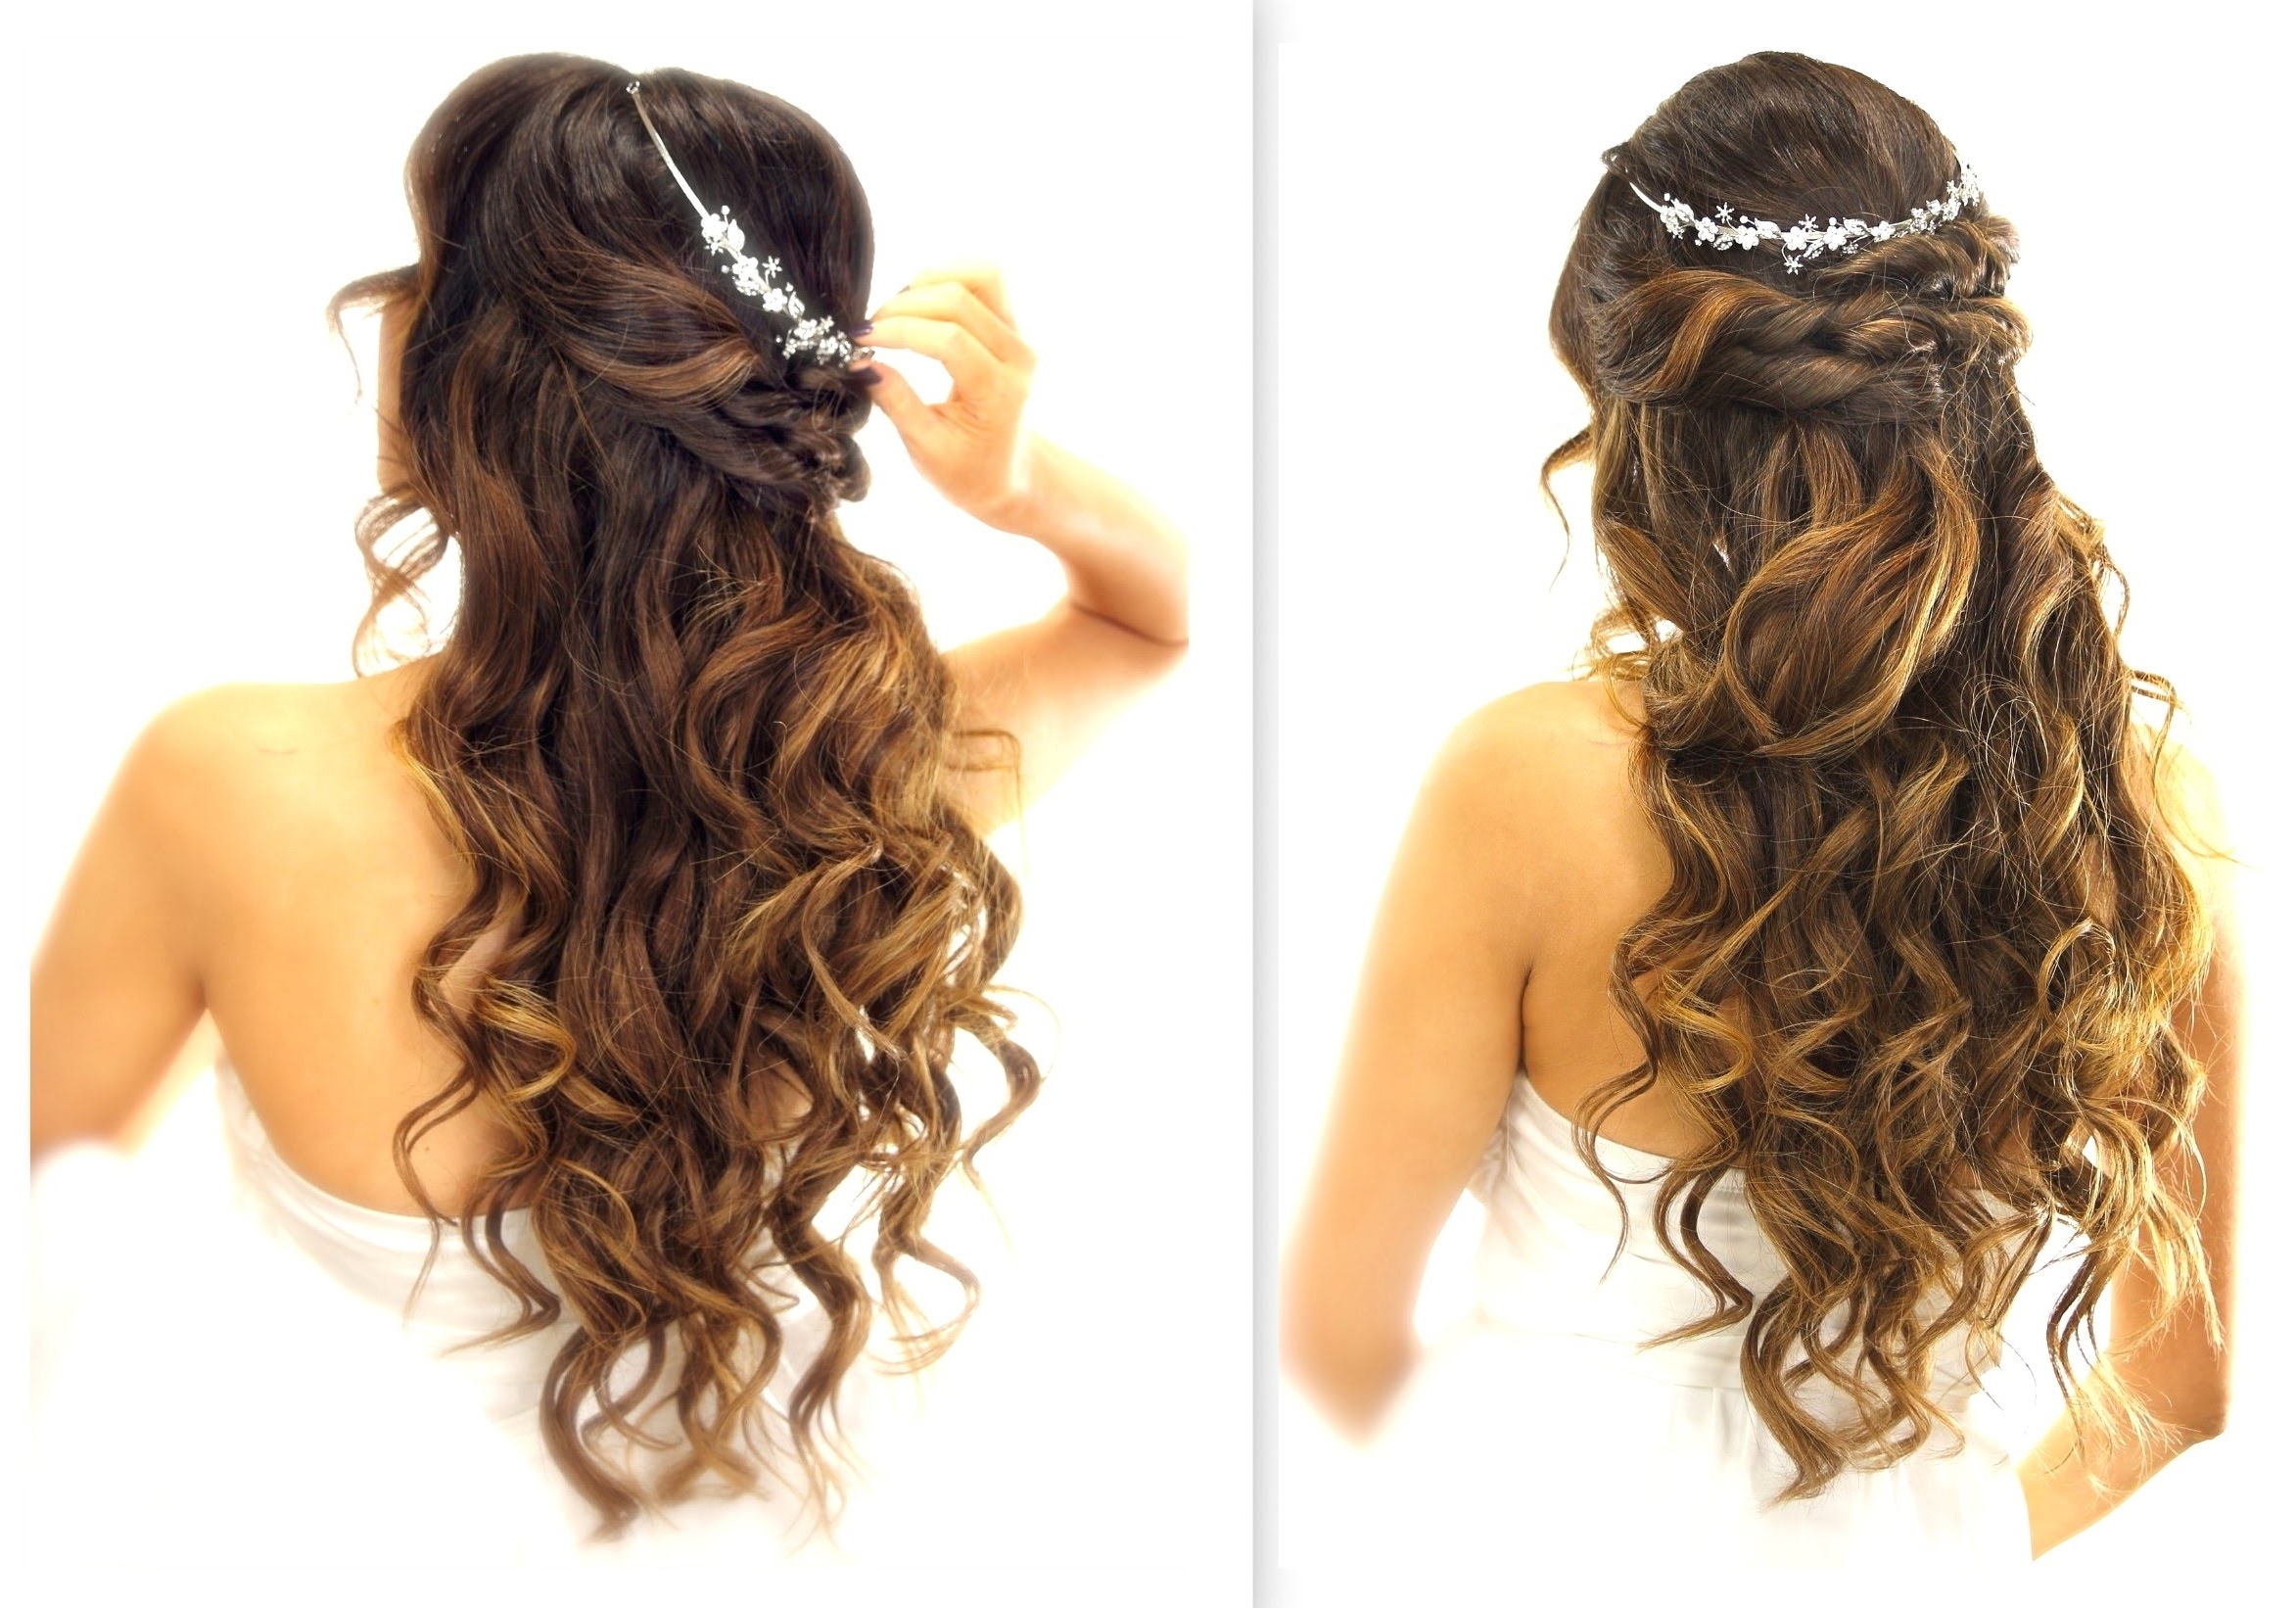 2018 Wedding Down Hairstyles For Medium Length Hair Within ☆ Easy Wedding Half Updo Hairstyle With Curls (View 1 of 15)